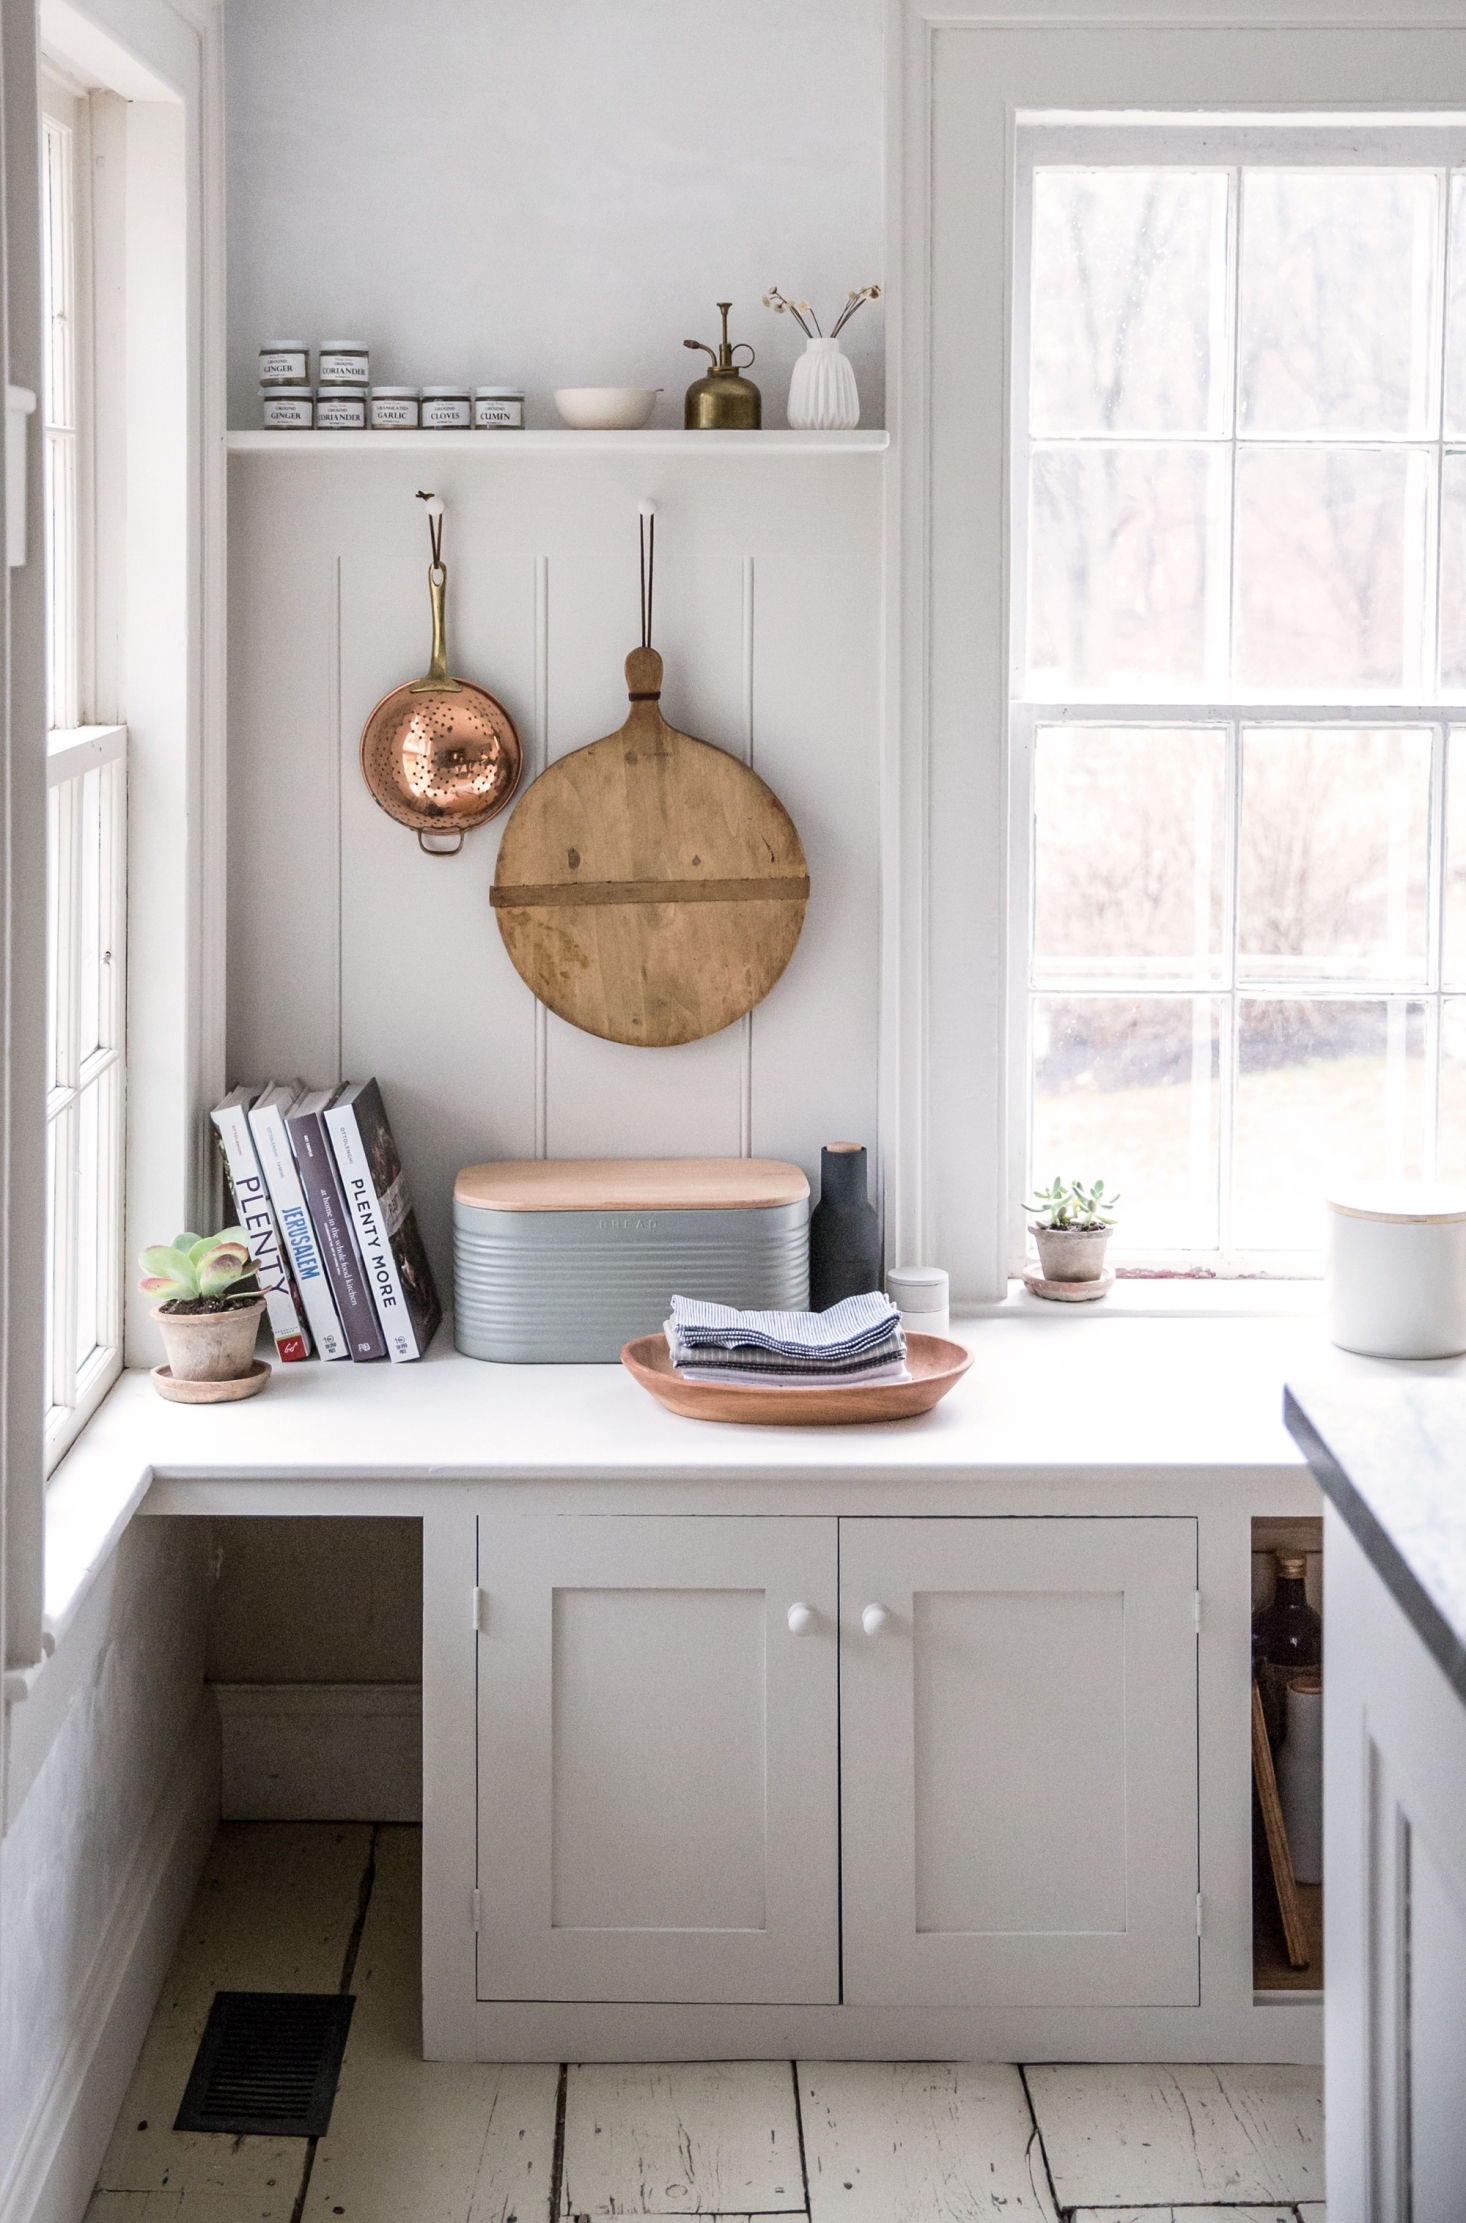 Image via Remodelista Designed by @jerseyicecreamco and Photo Credit @local_milk